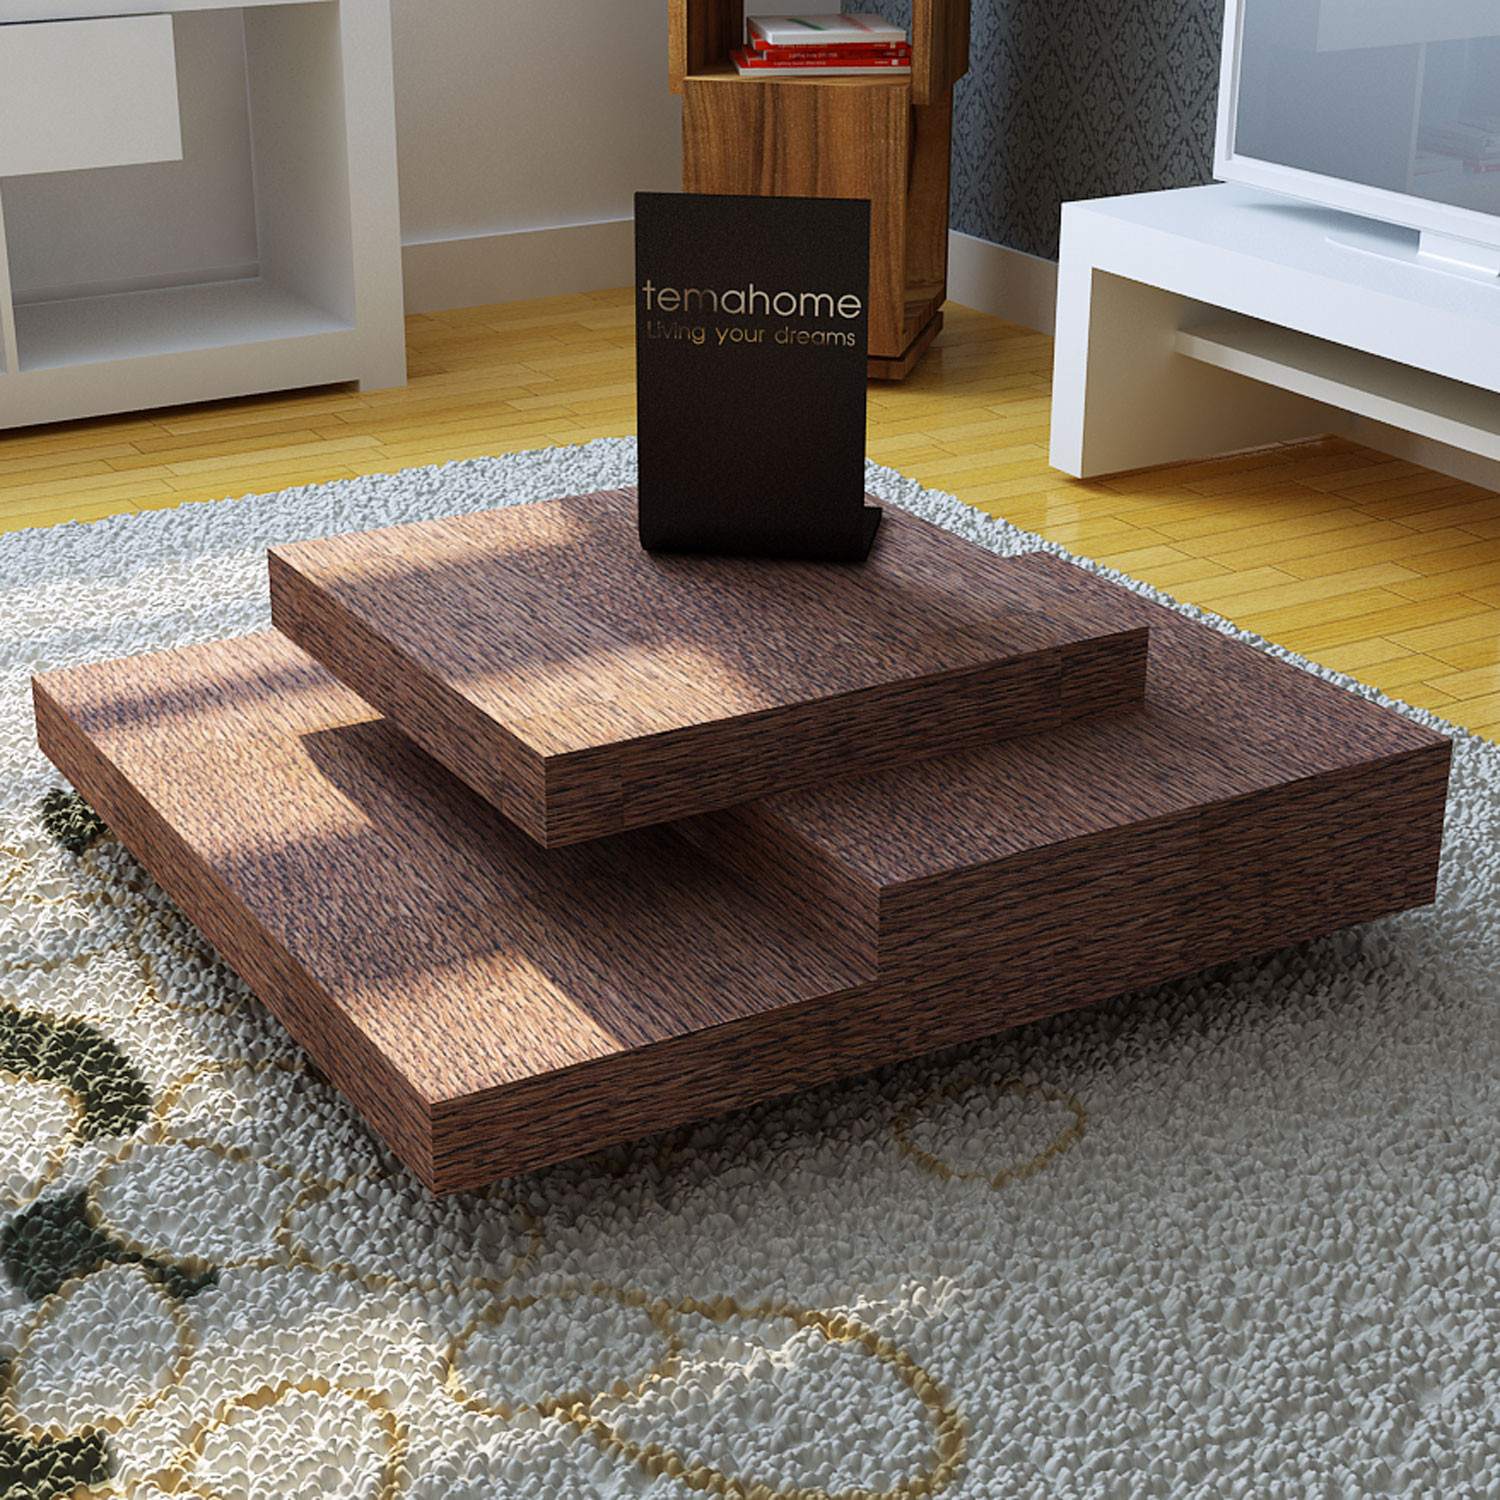 Slate Coffee Table Chocolate Temahome Living Touch of Modern